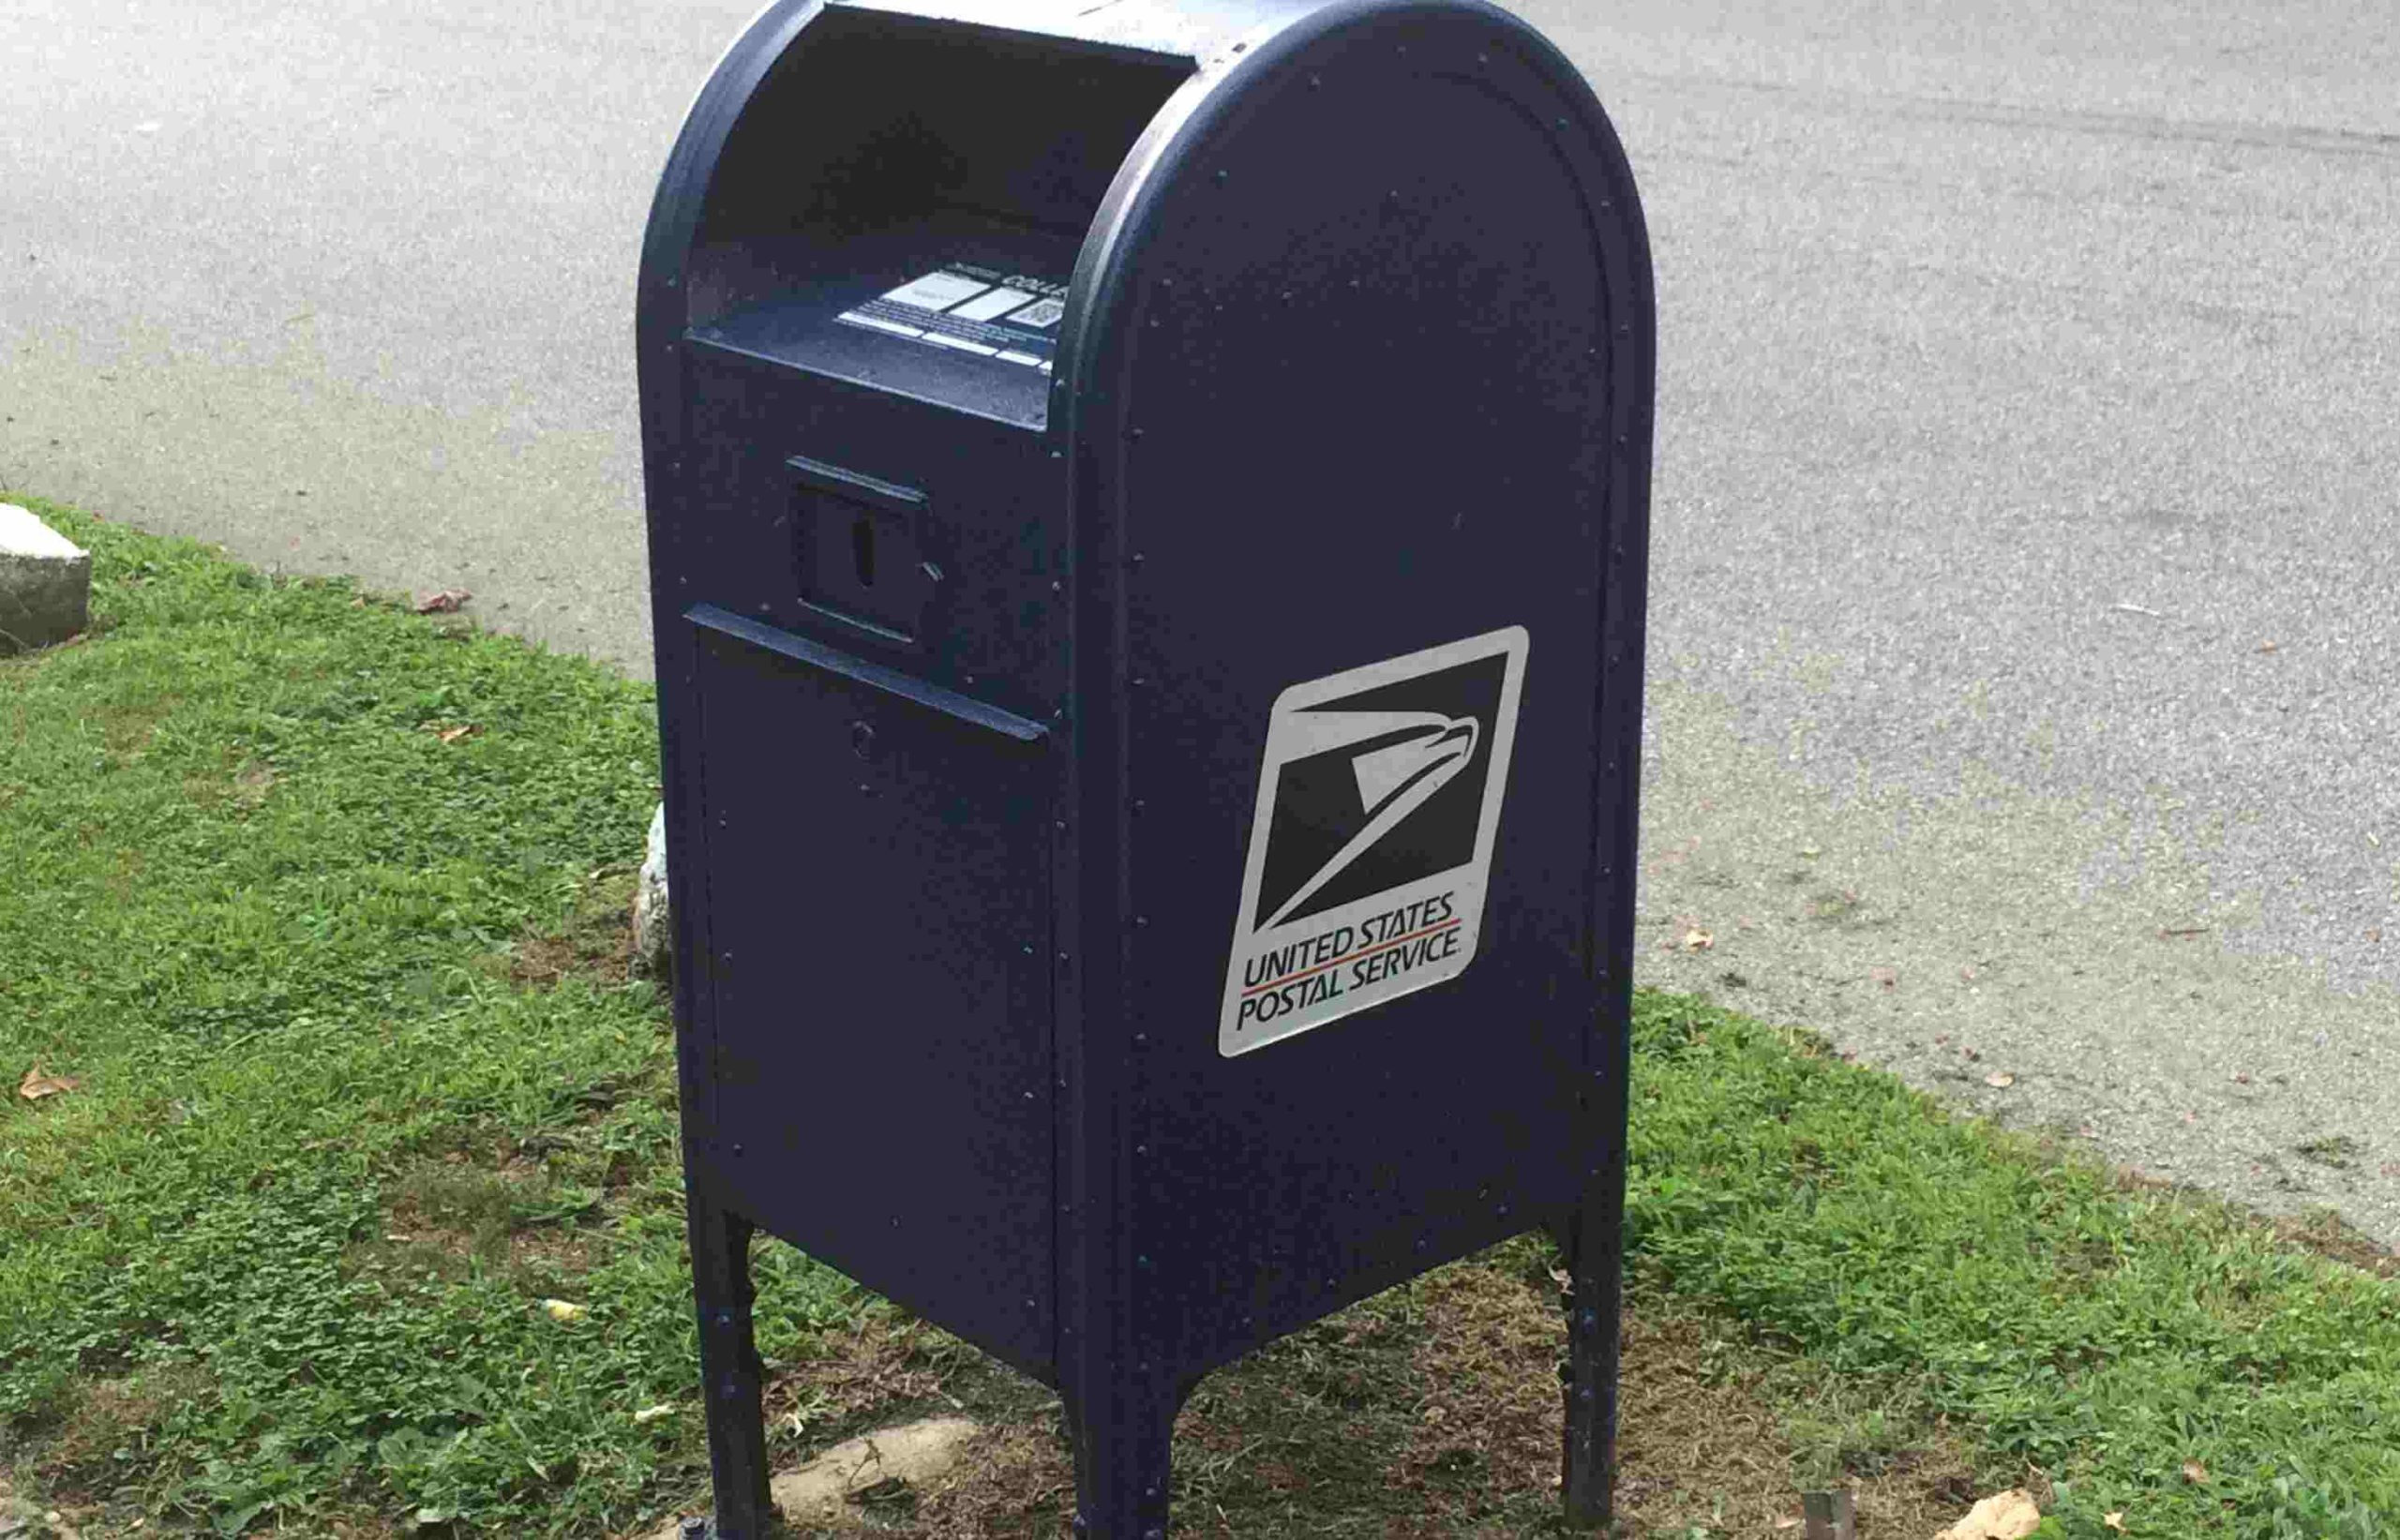 New York Times: Mail Delivery Concerns Rising in Philadelphia Region